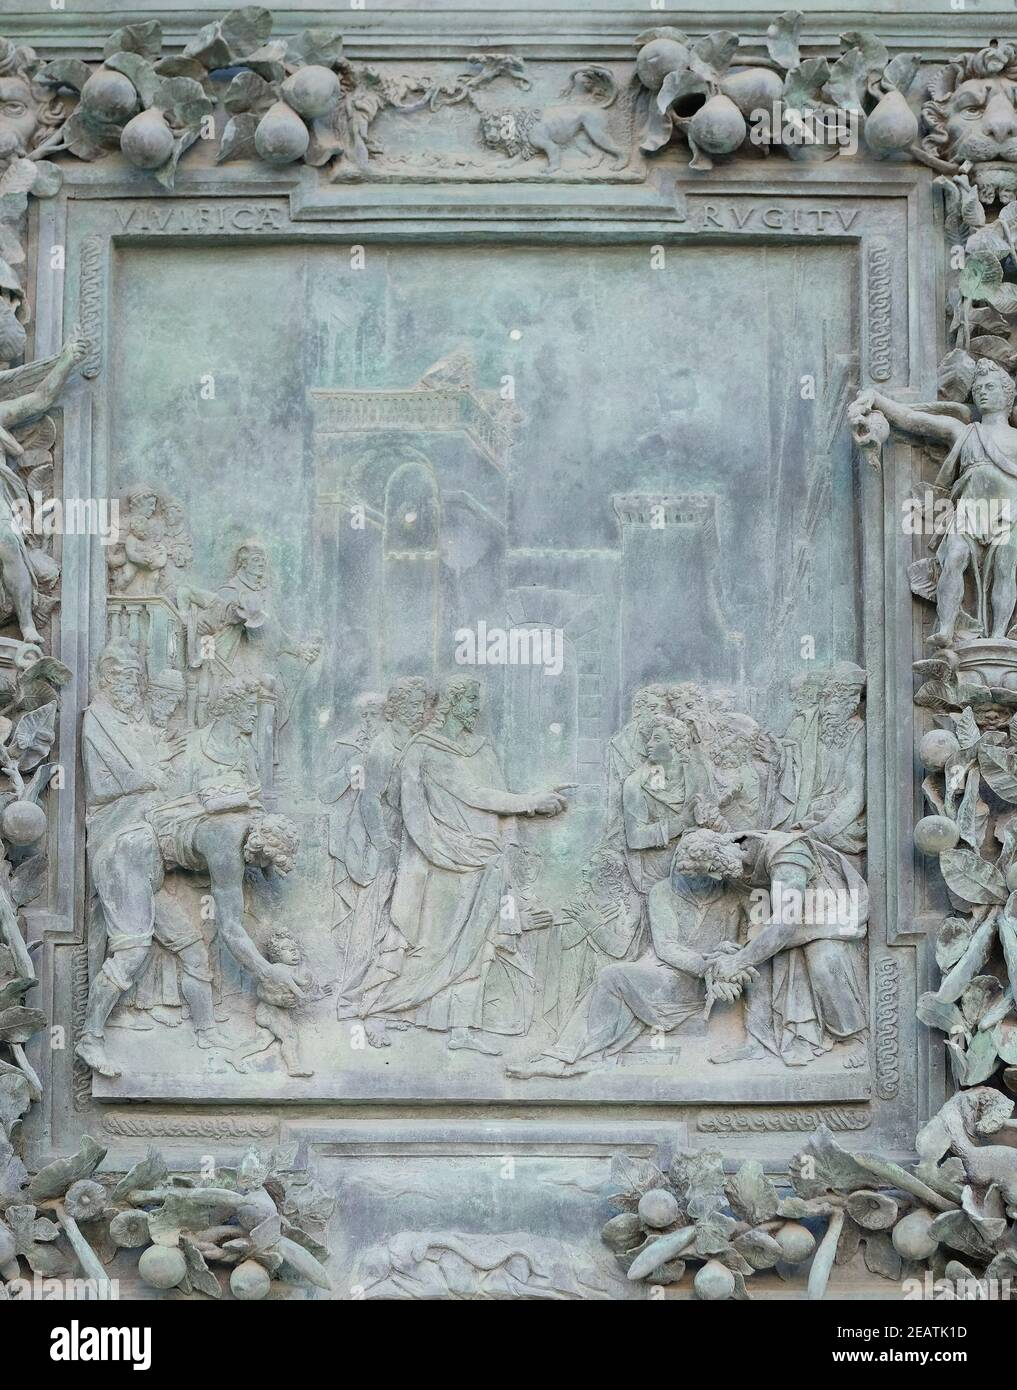 The payment of the tribute, sculpture work from Giambologna's school, collocated in the left portal panel of the Cathedral St. Mary of the Assumption in Pisa, Italy Stock Photo